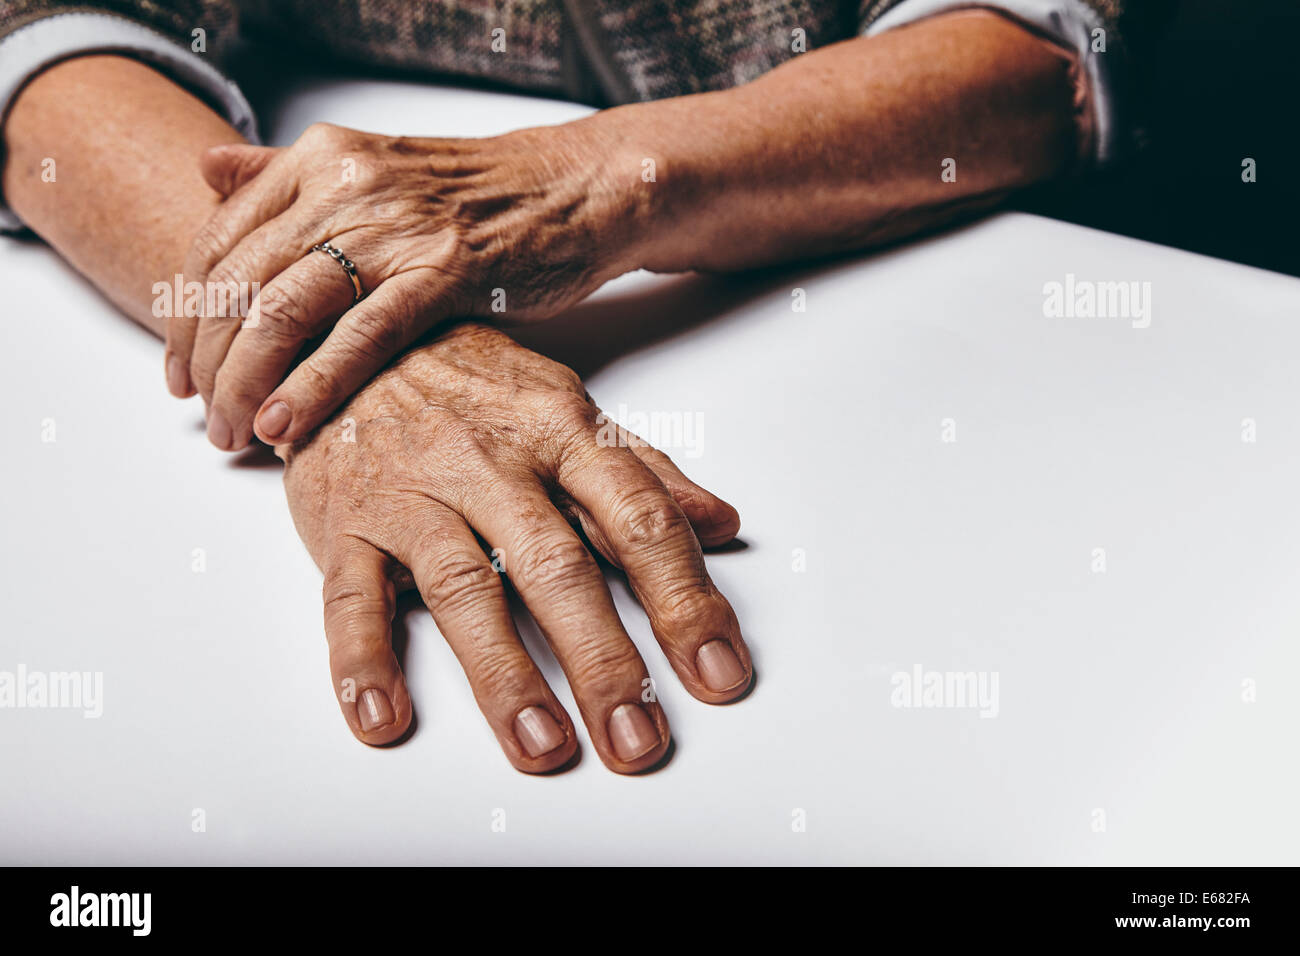 Close-up image of senior woman sitting by a table with focus on her hands. Old female hands on a desk. - Stock Image